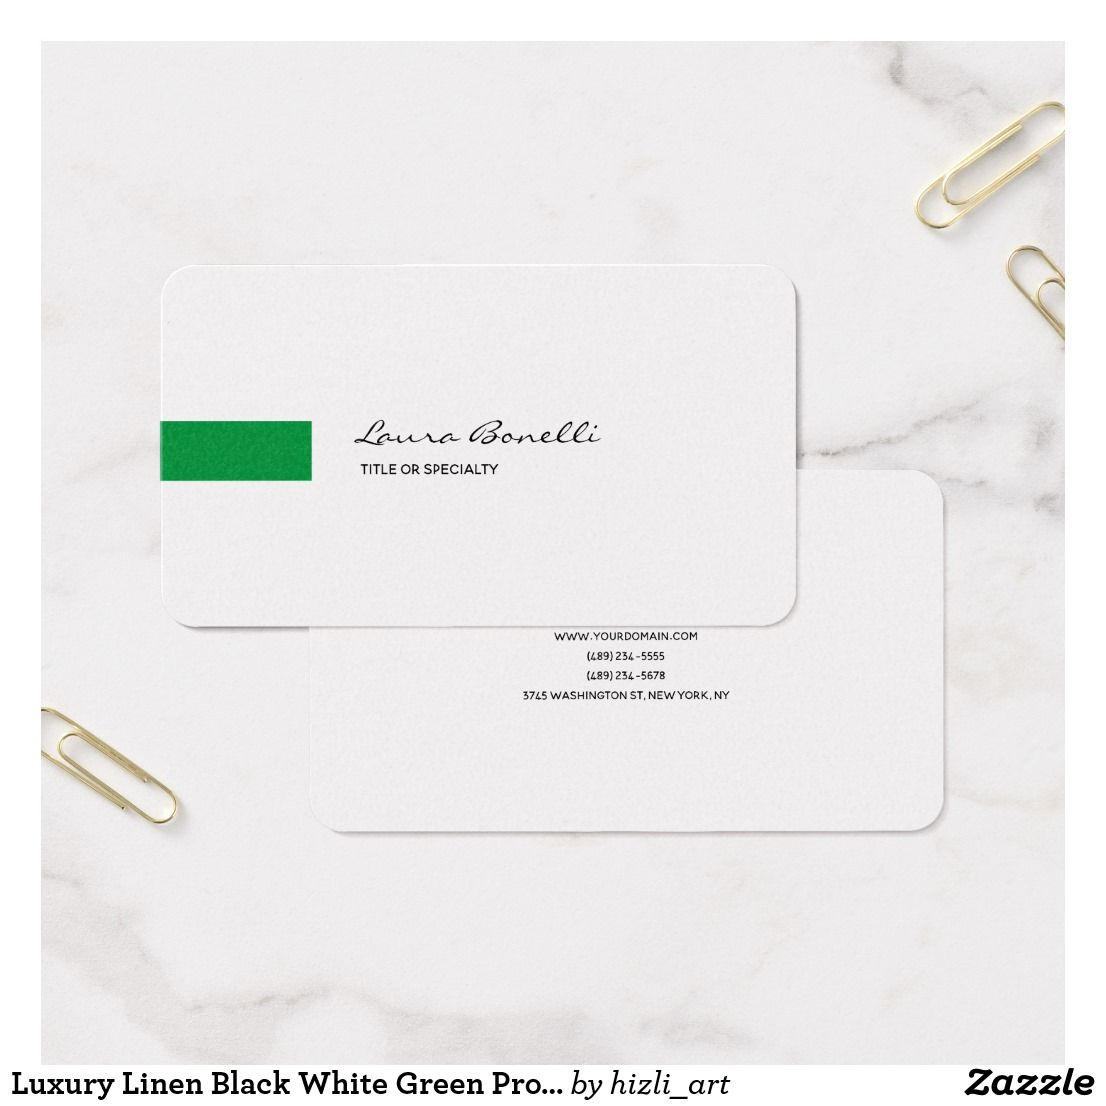 Luxury linen black white green professional modern business card luxury linen black white green professional modern business card reheart Image collections